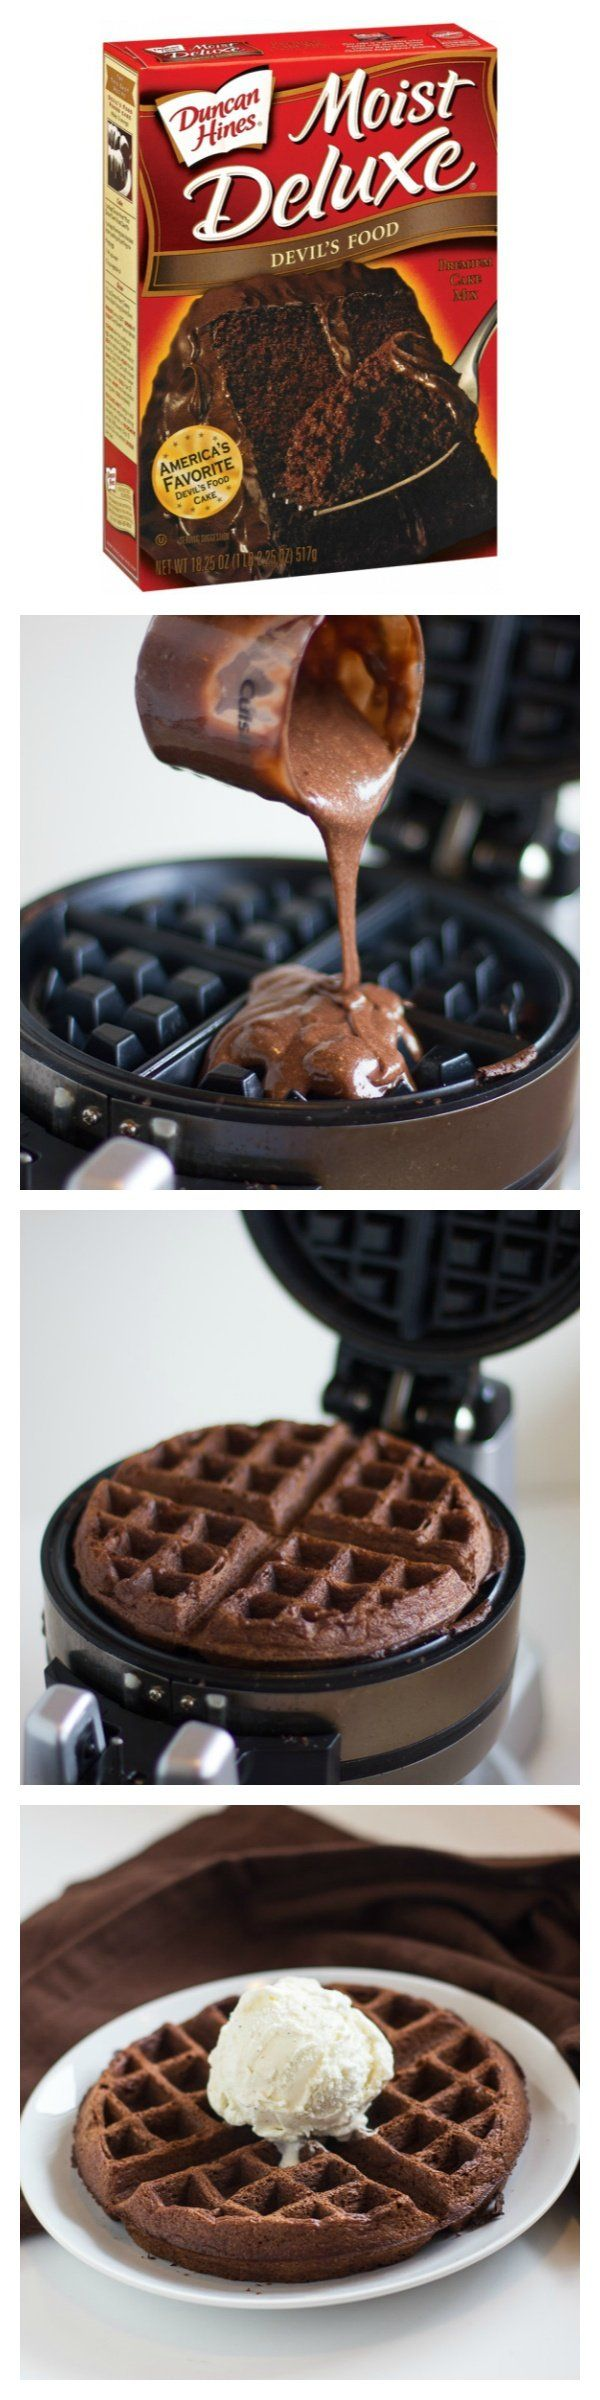 The perfect treat for Team Members who never waffle on great service. P.S. Also a great idea for August 24, Waffle Day!